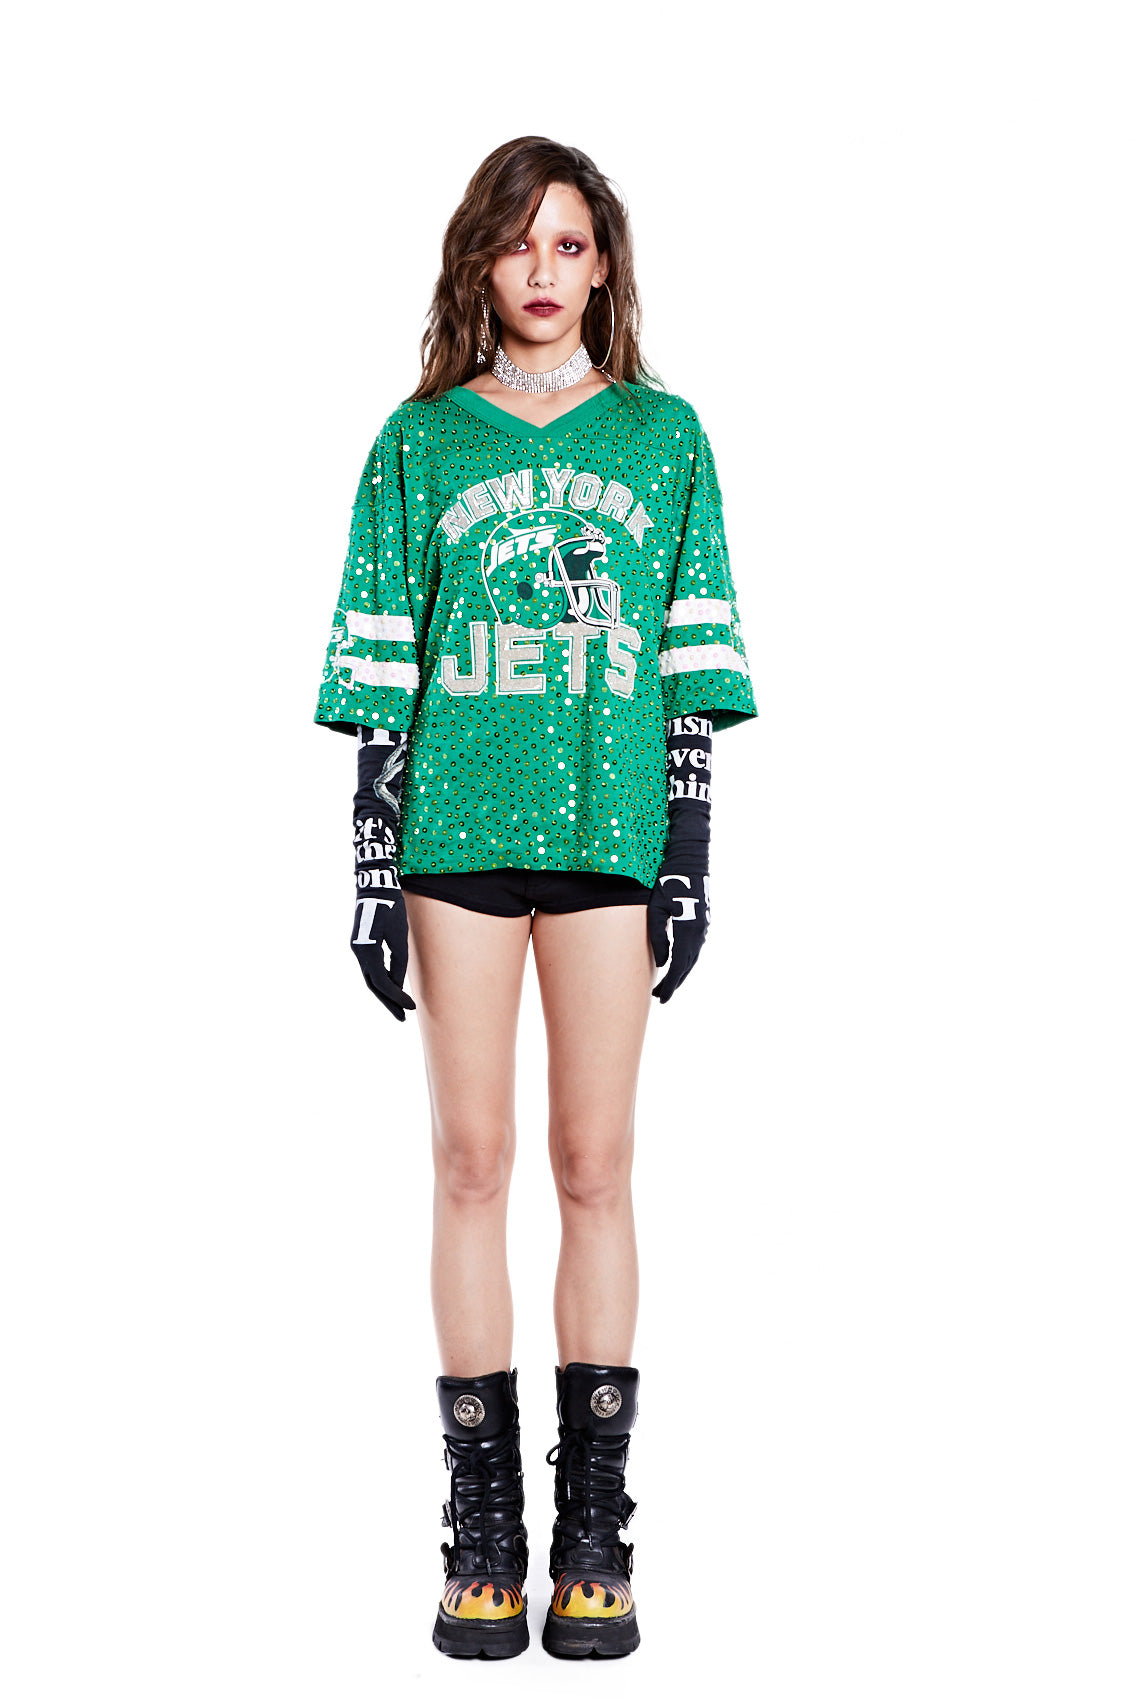 American Football Jersey Top - New York Jets - I LOVE DIY by Panida